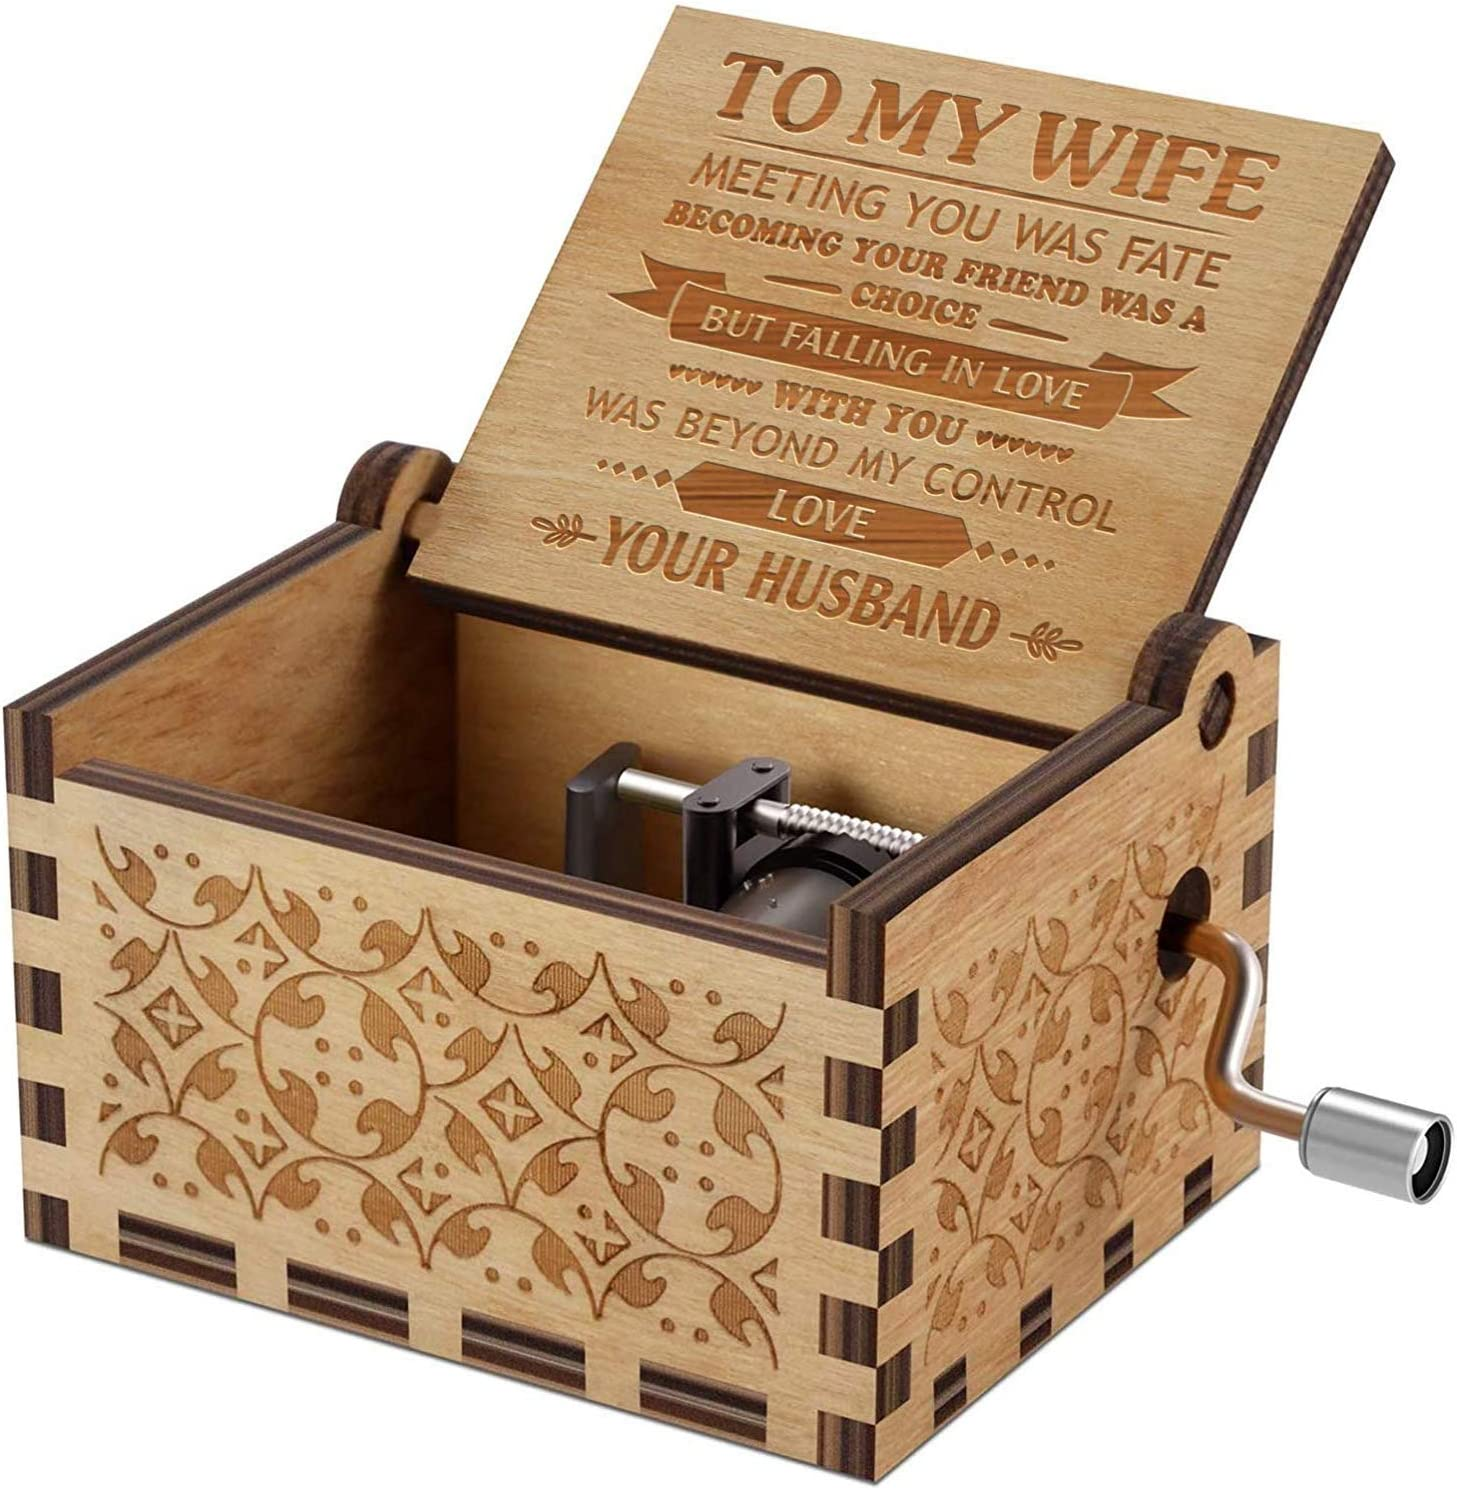 Engraved Music Box You Are My Sunshine Gift For Your Wife Falling In Love With You Christmas Gift Ideas For Her